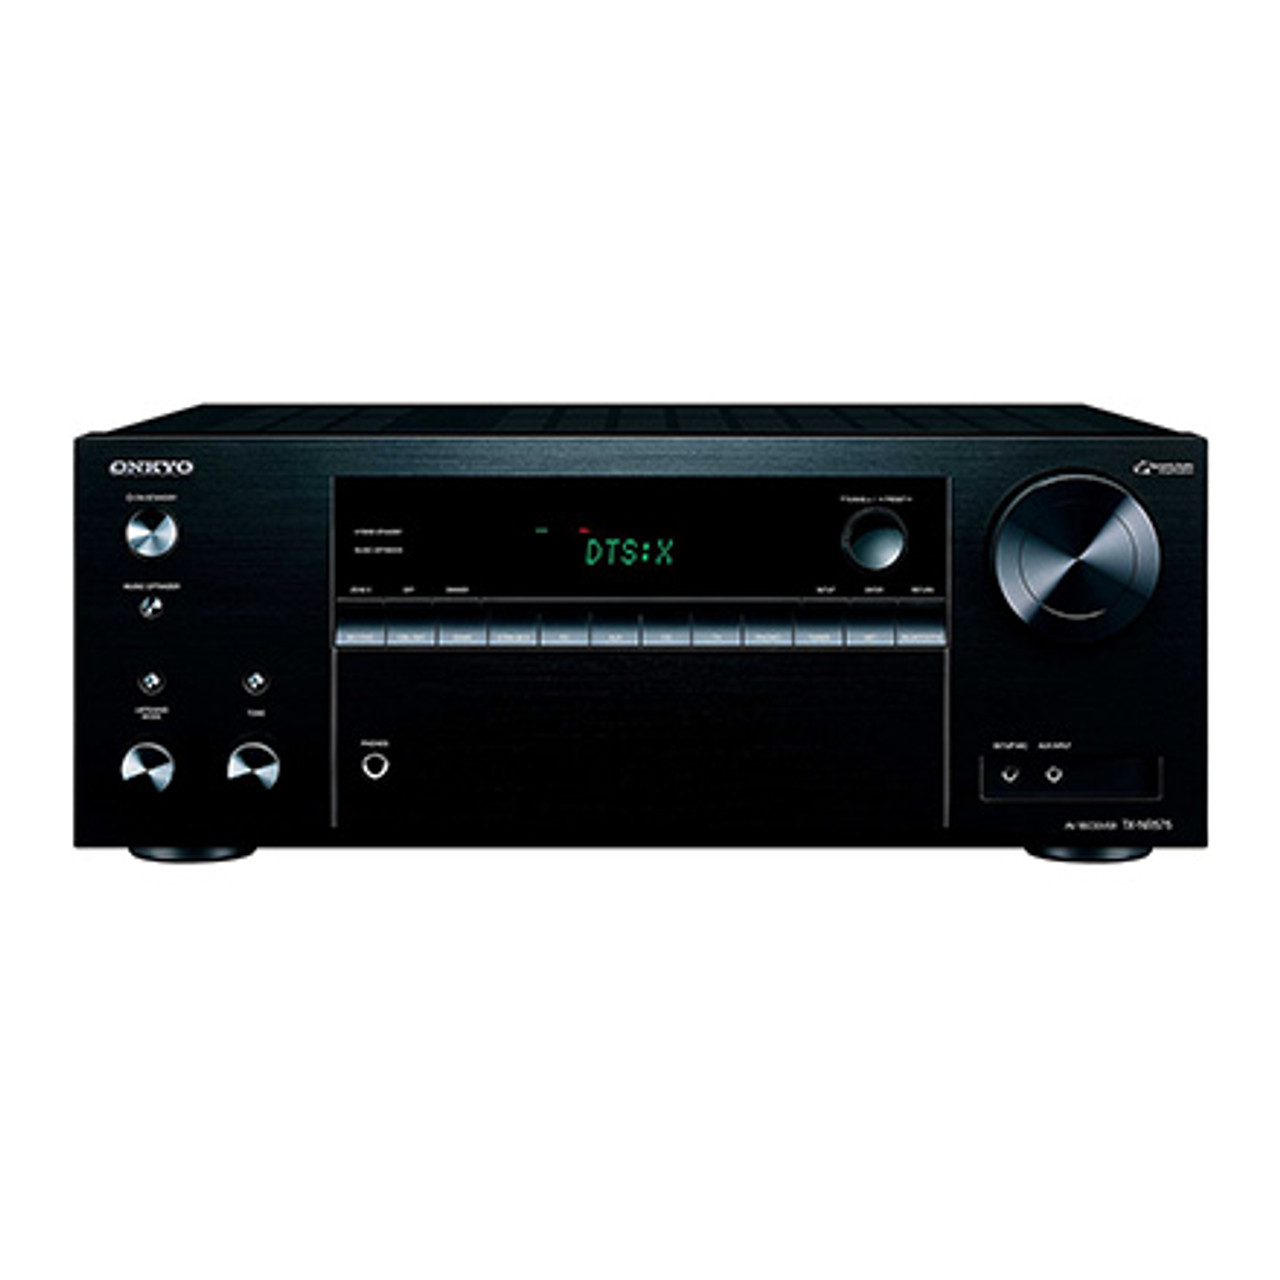 Onkyo® TX-SR575 7.2-Channel Network A/V Receiver with ATMOS, TrueHD, and DD Plus